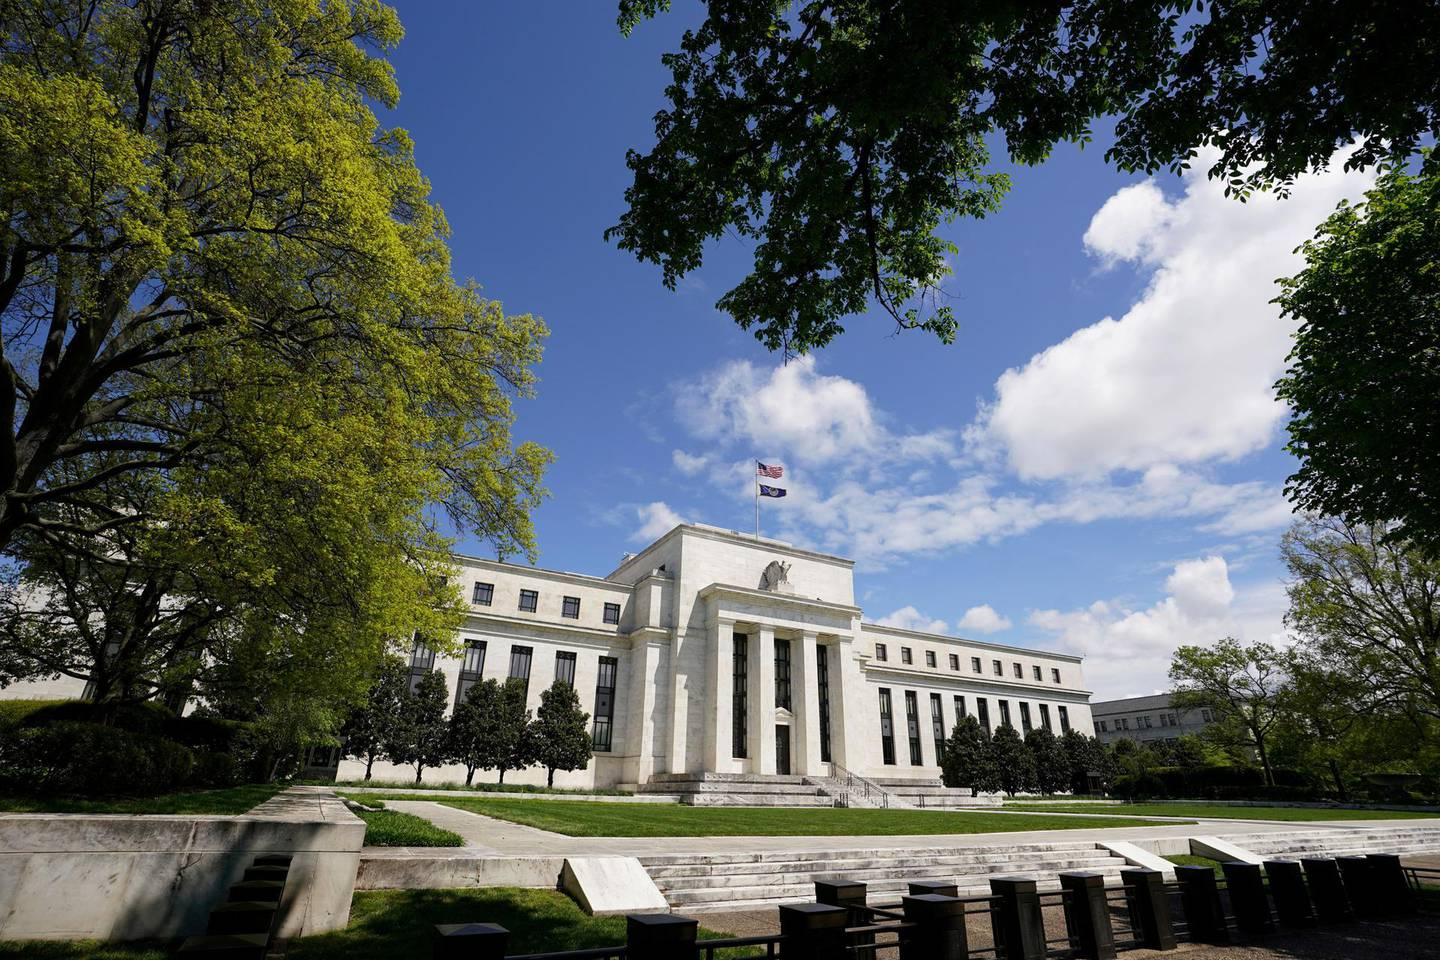 FILE PHOTO: The Federal Reserve building is set against a blue sky in Washington, U.S., May 1, 2020. REUTERS/Kevin Lamarque/File Photo